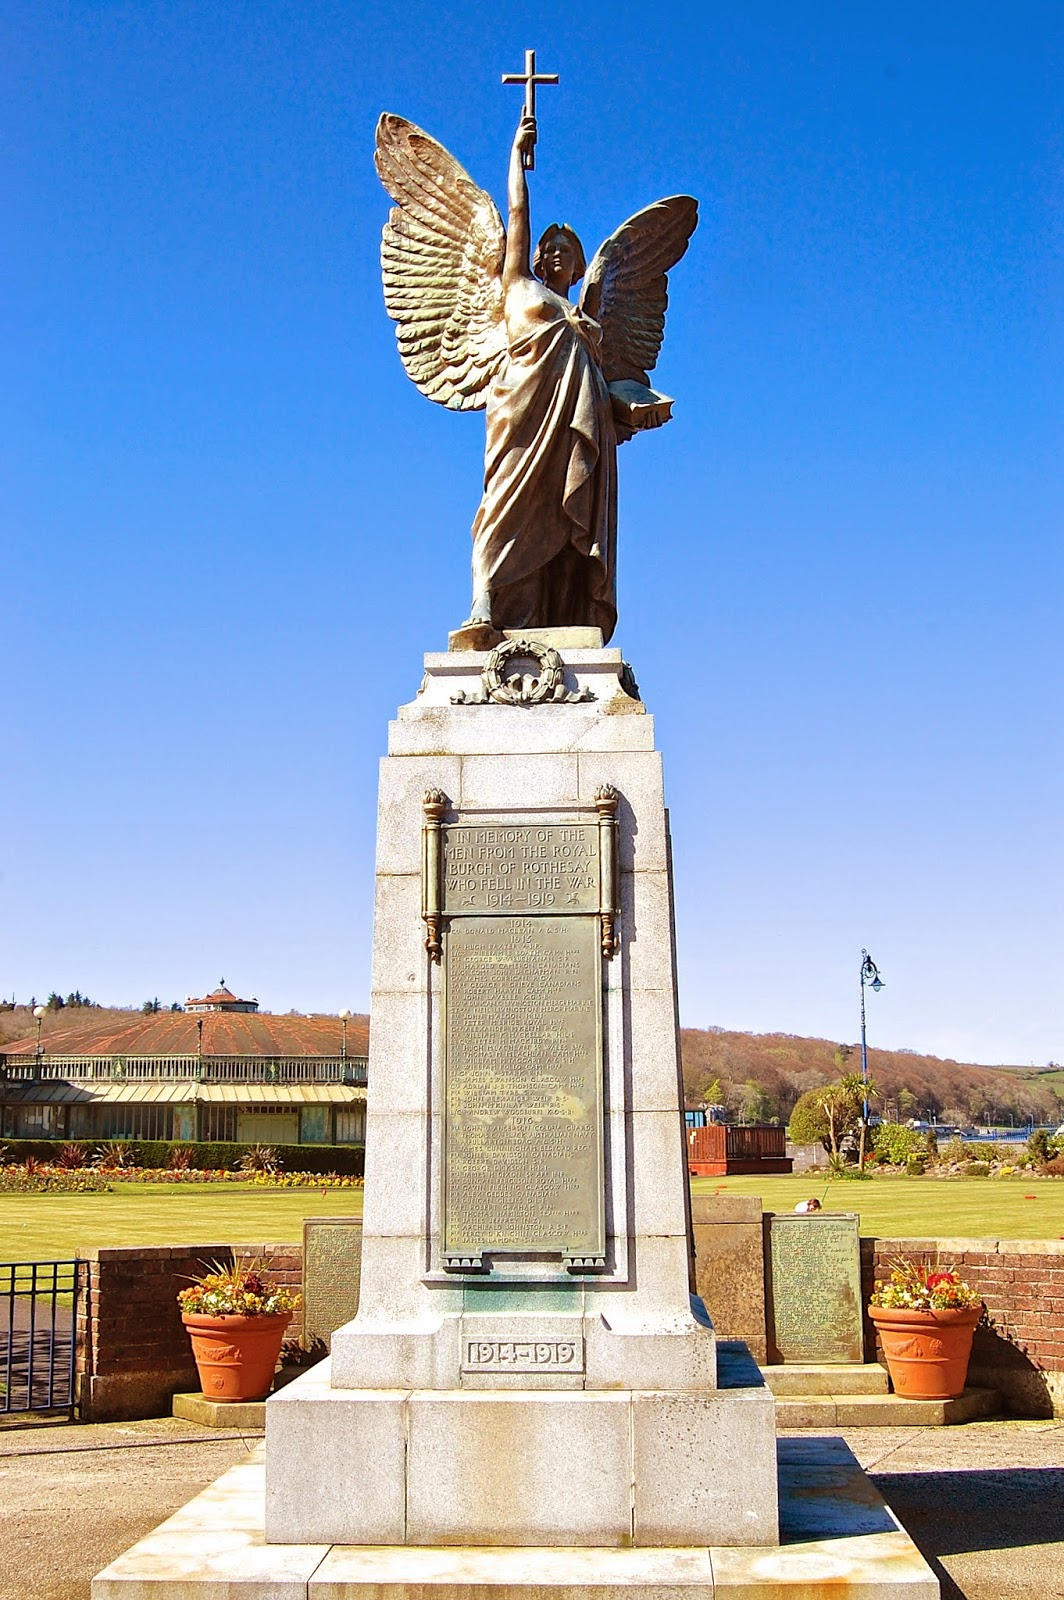 Rothesay's World War I memorial designed by Pilkington Jackson